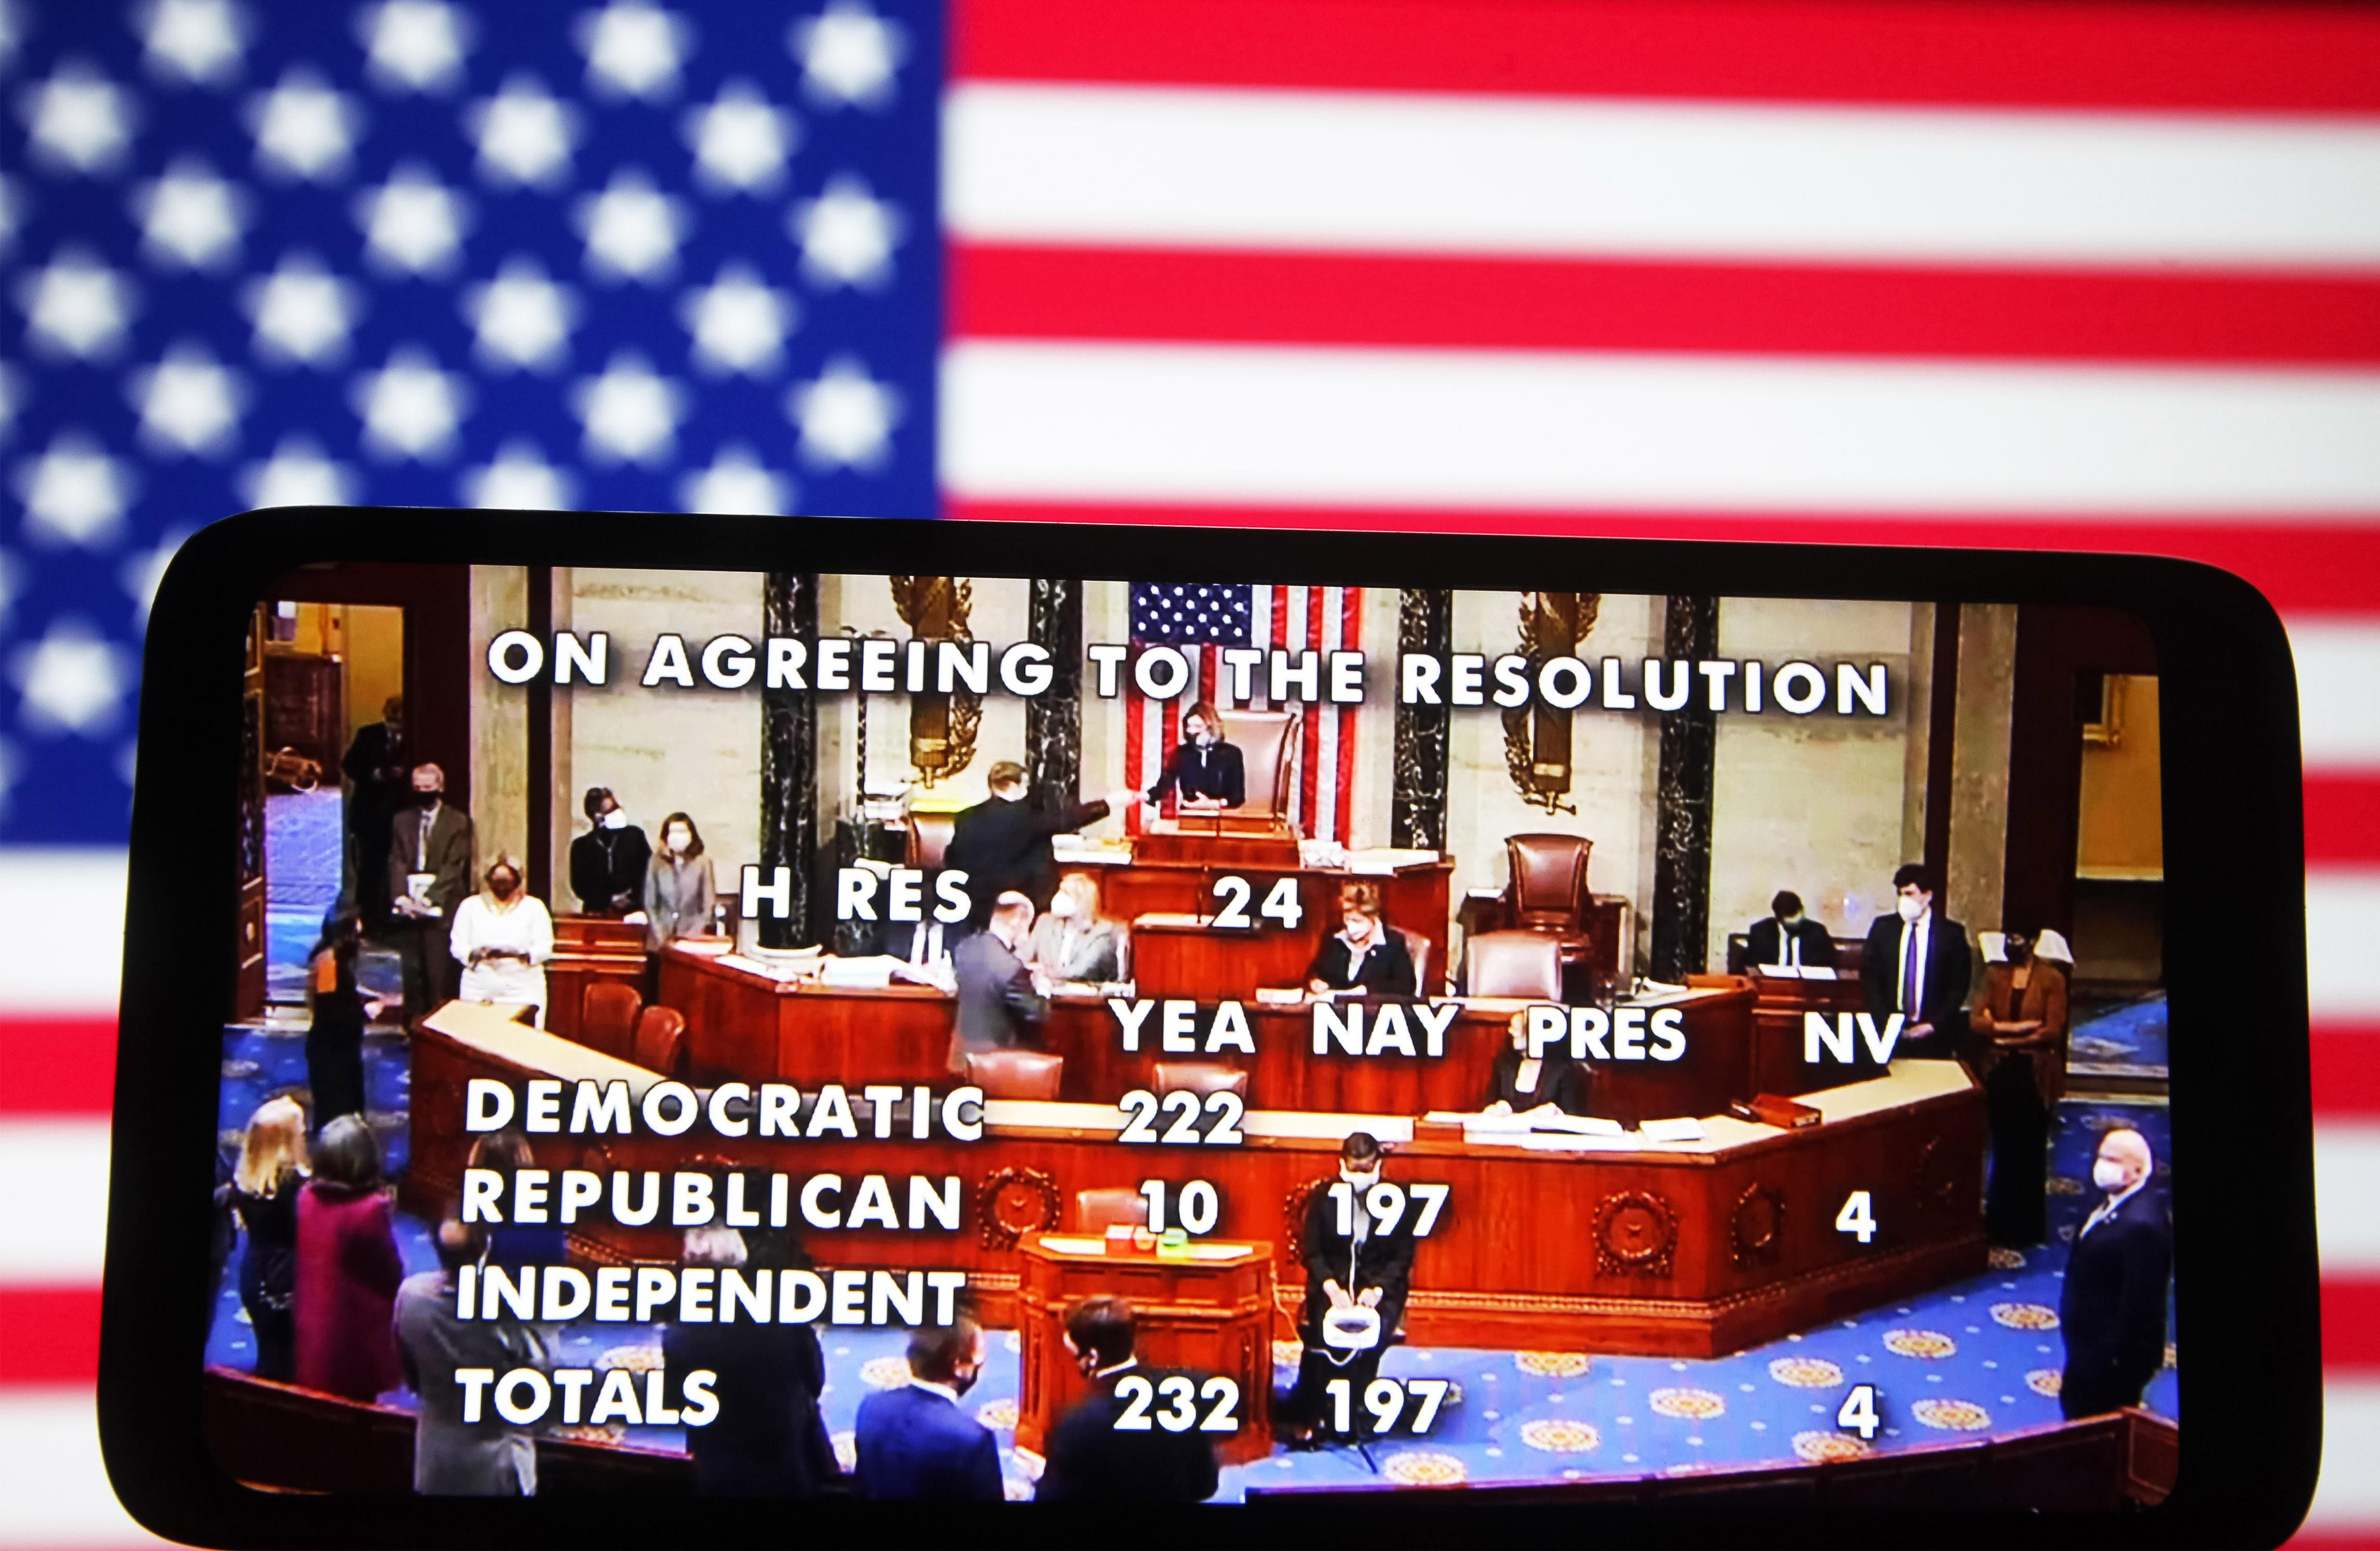 oting result of the House of Representatives is seen during the vote to impeach U.S. President Donald Trump in Washington, US., on this frame from a video displayed on a smartphone screen in front the US flag.